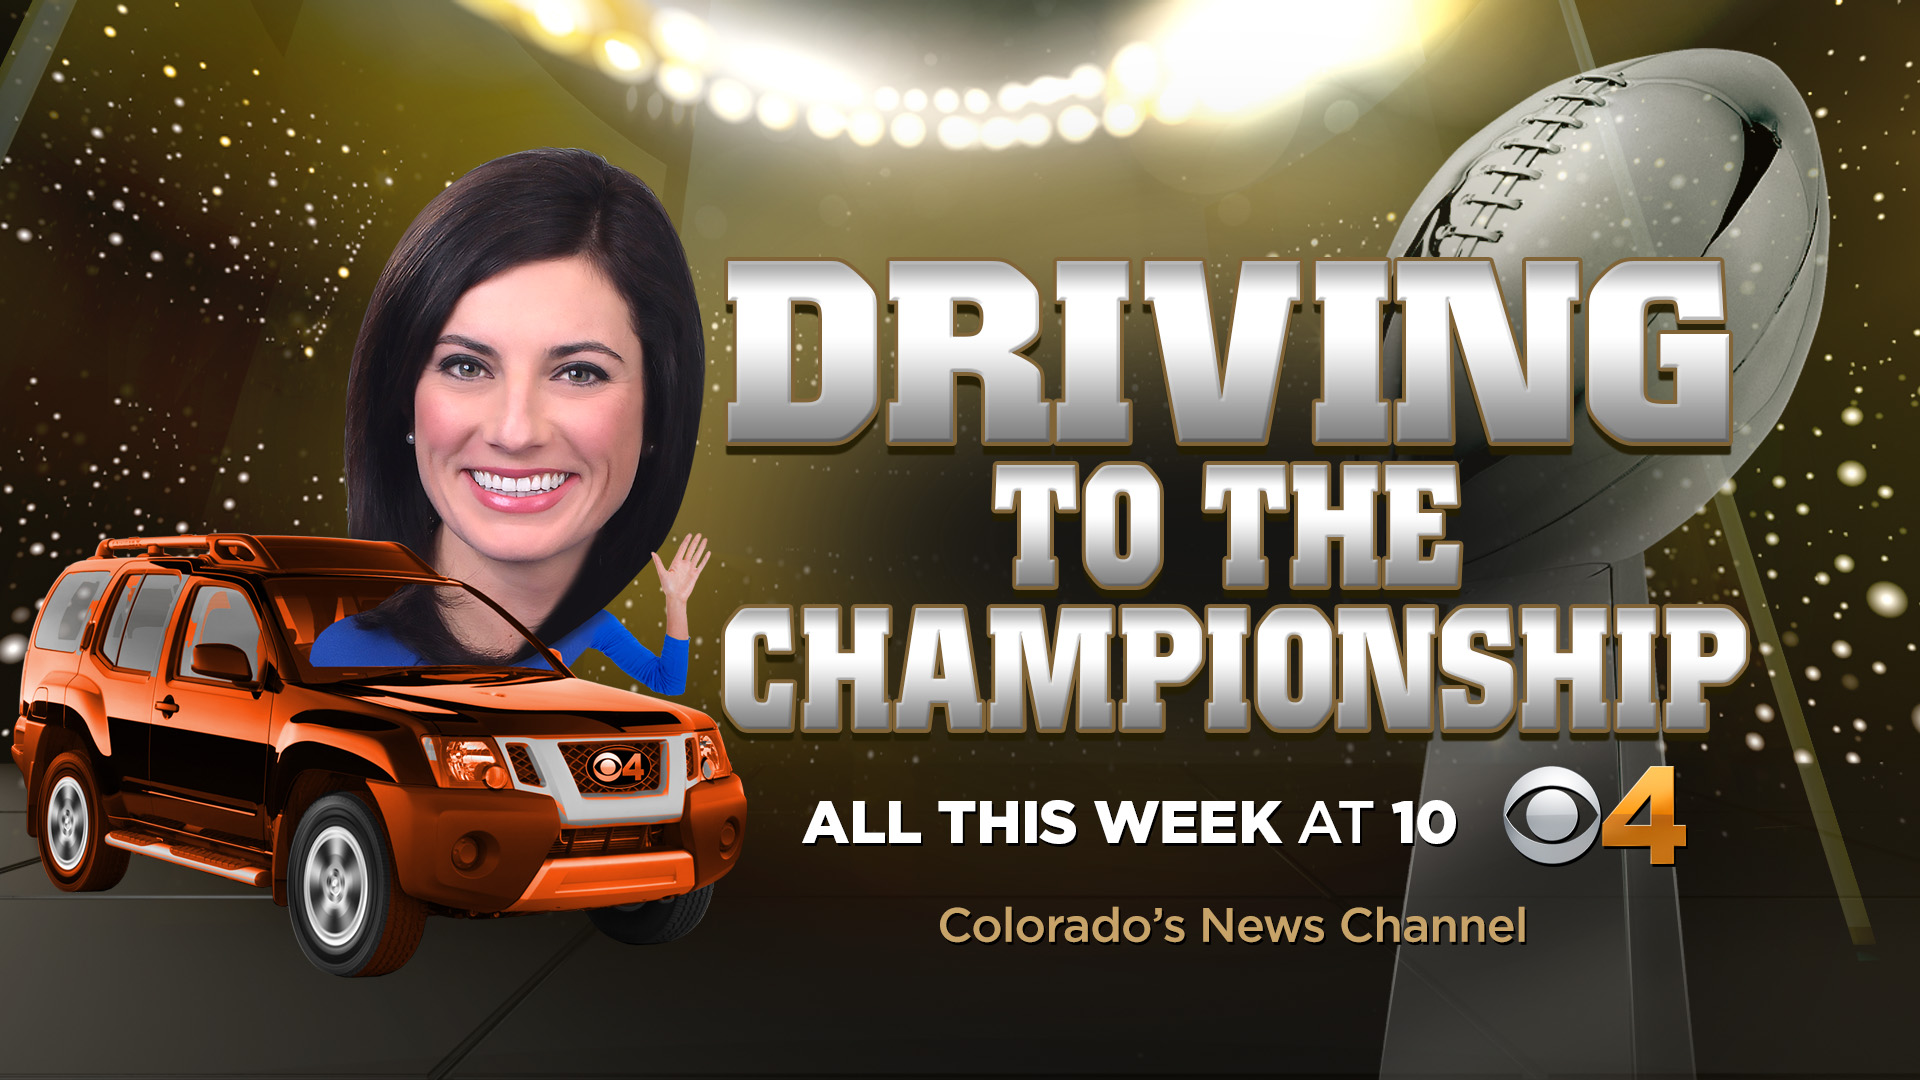 CBS4's Jamie Leary is driving to the Super Bowl and reporting from the road this week (credit: CBS)